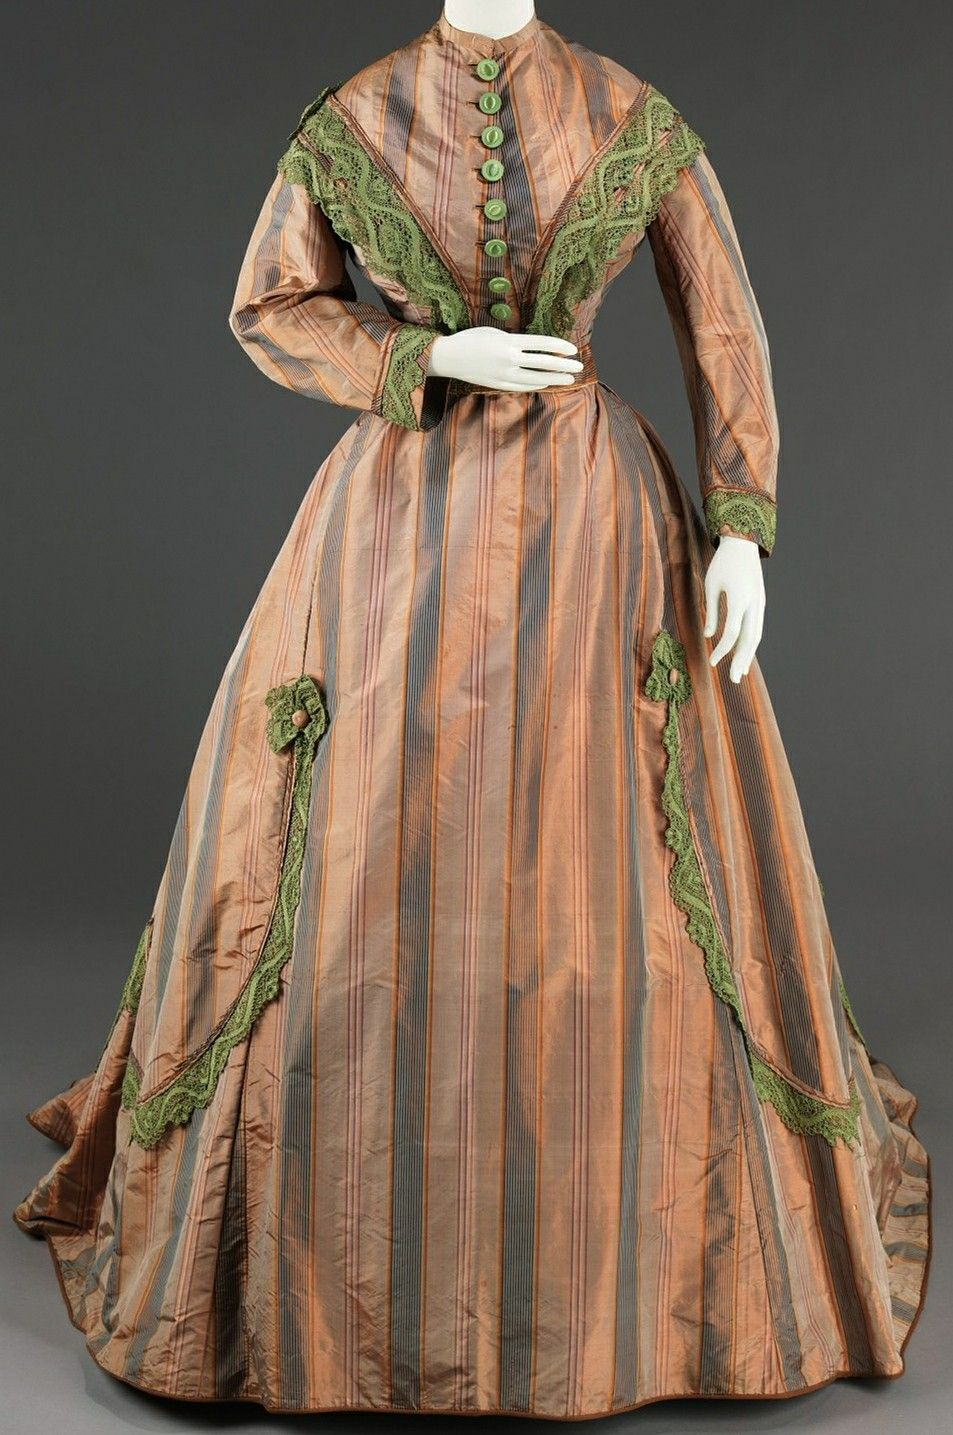 Pin By Jessica Clair On 1860s Ballgown Project Old Fashion Dresses Historical Dresses Victorian Gowns [ 1435 x 953 Pixel ]